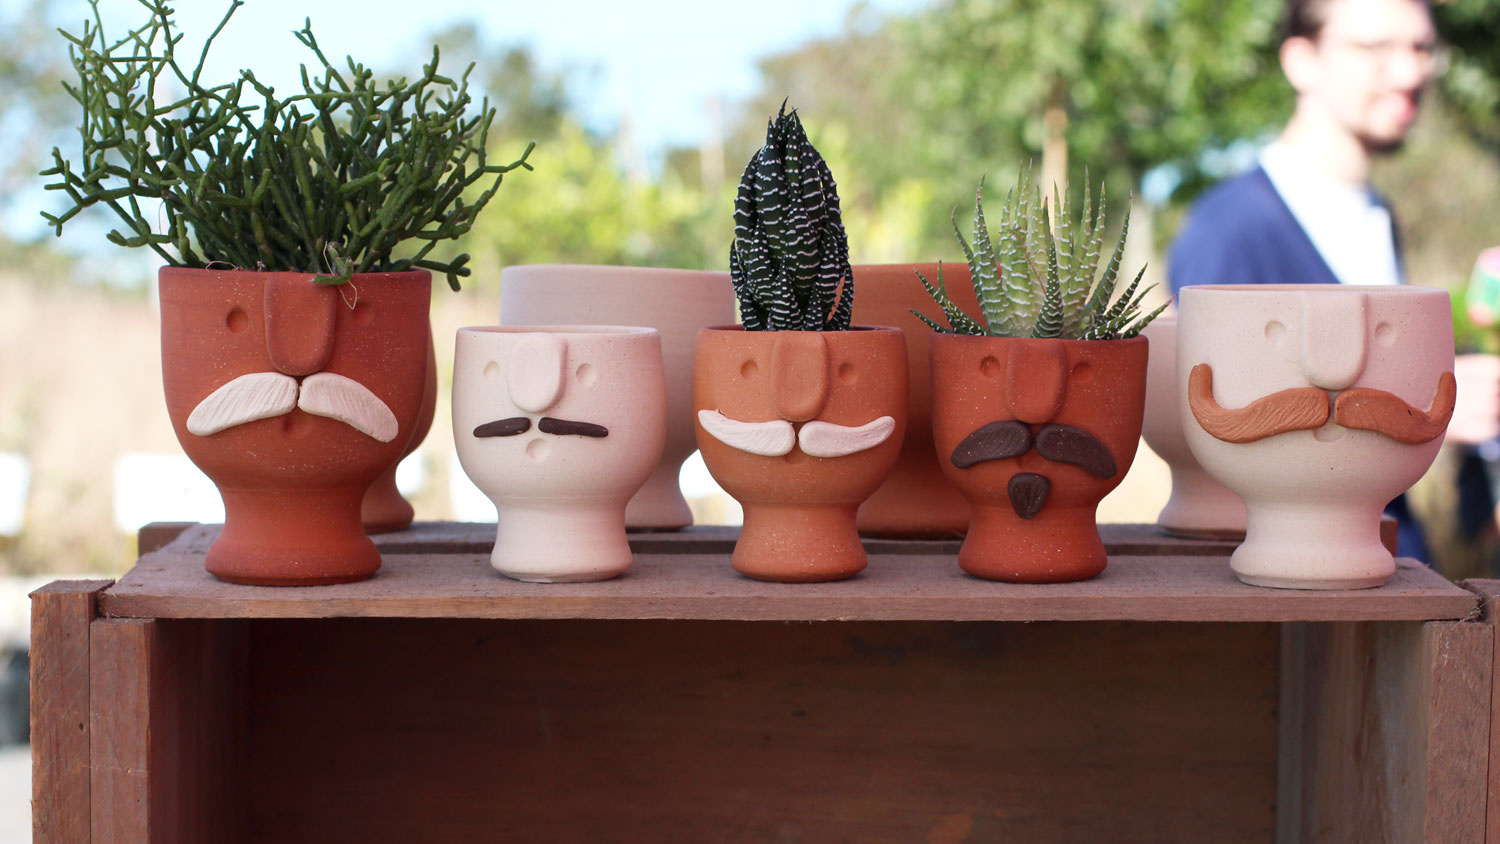 A row of potted plants. The pots have faces with mustaches.